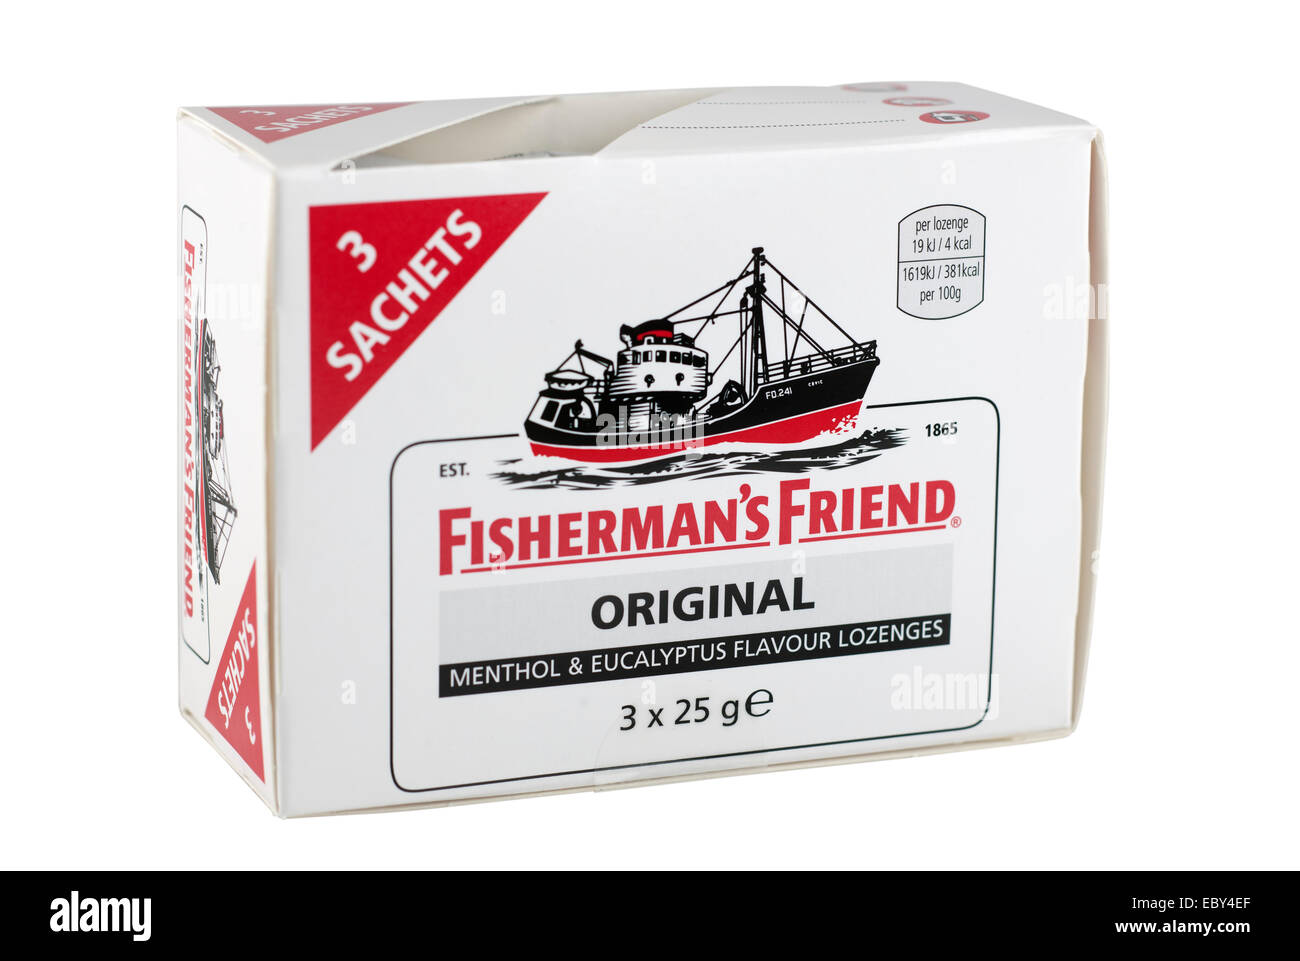 Pack of three sachets of Fisherman's Friend original menthol and eucalyptus flavour lozenges - Stock Image